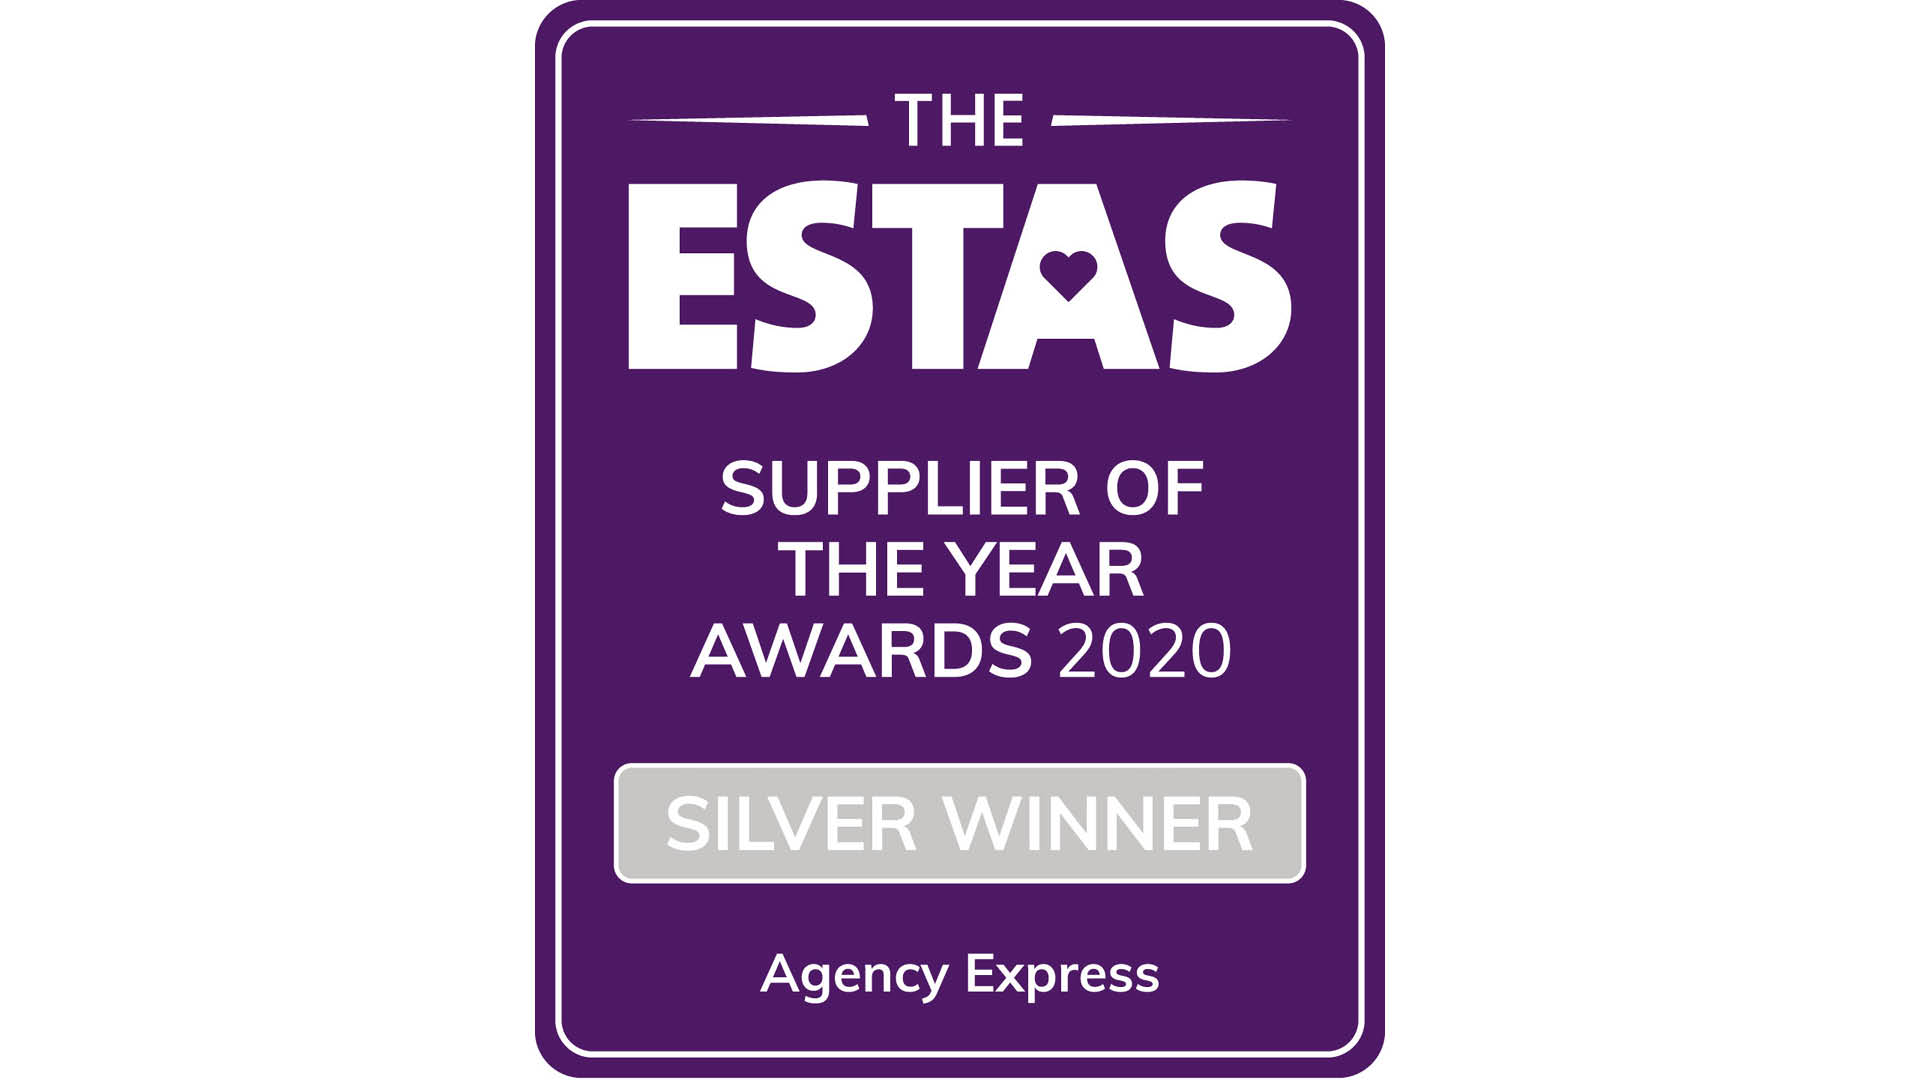 Agency Express remain in the UK's top three suppliers to estate agents for the 7th consecutive year.